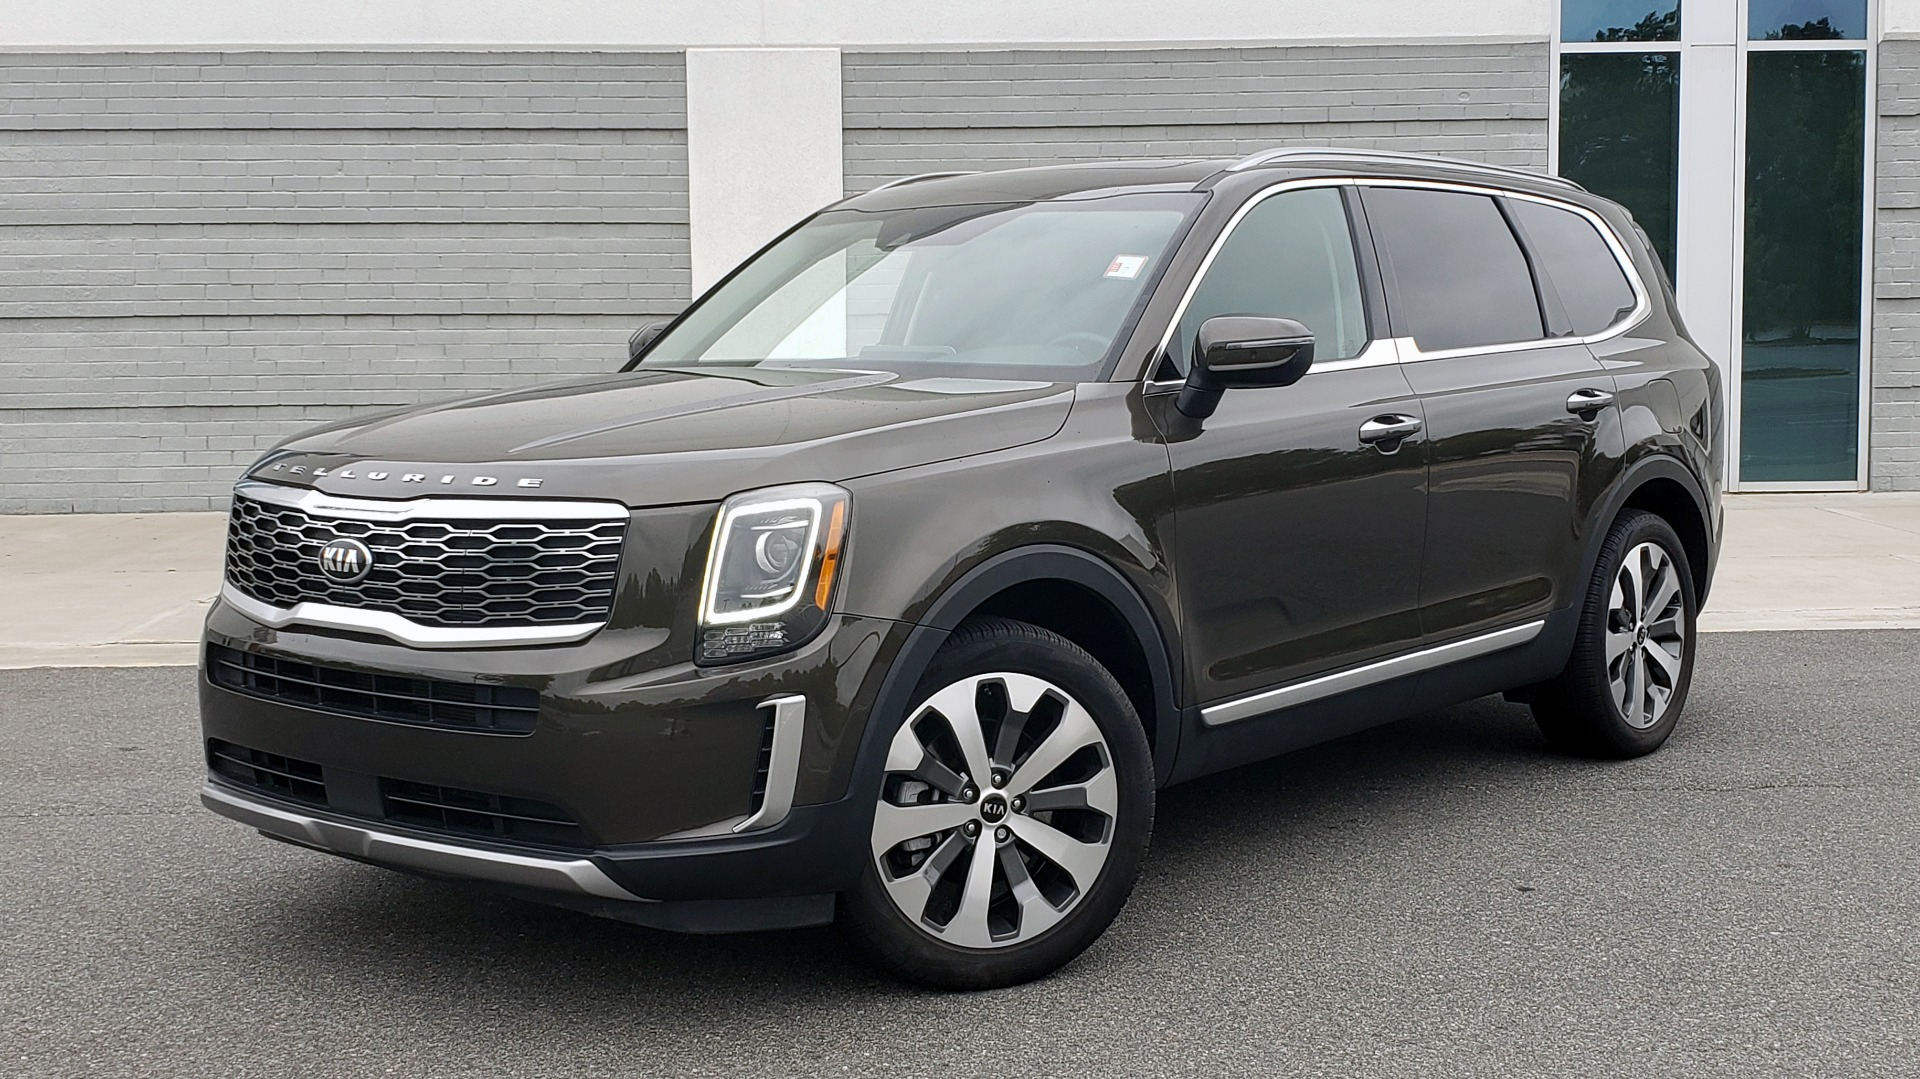 Used 2020 Kia TELLURIDE S 3.8L / FWD / 8-SPD AUTO / SUNROOF / REARVIEW / 20INCH WHEELS for sale $41,595 at Formula Imports in Charlotte NC 28227 1